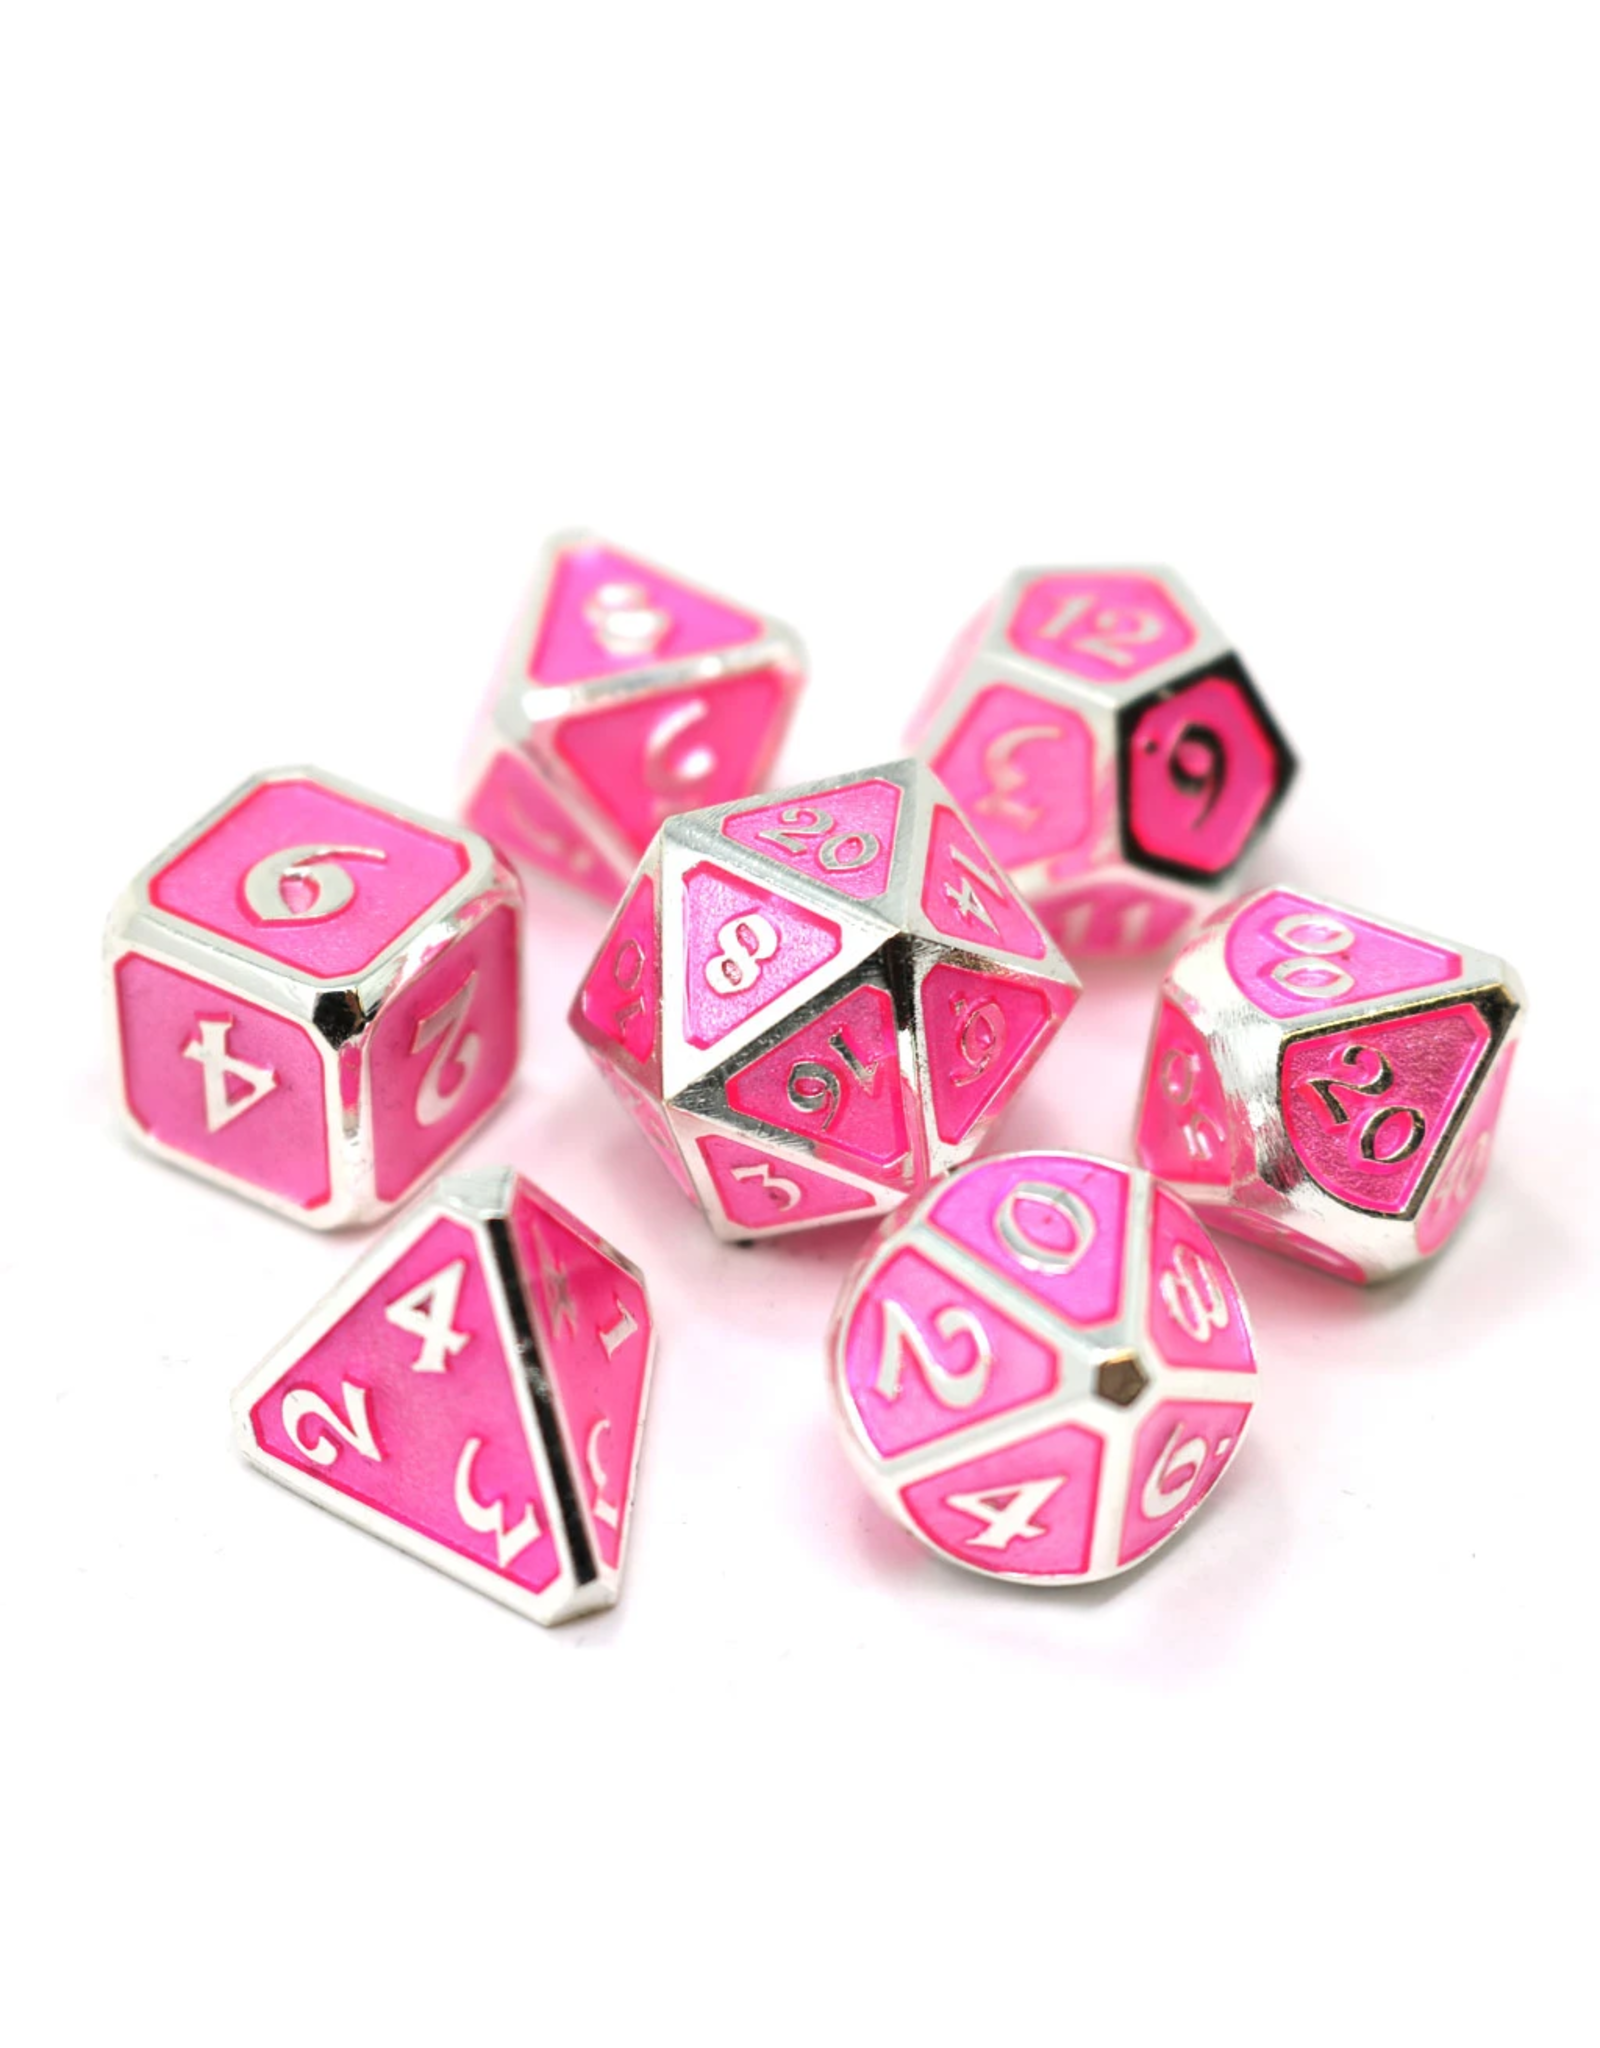 DIE HARD DICE DIE HARD DICE 7 CT RPG MYTHICA PLATINUM PINK SAPPHIRE